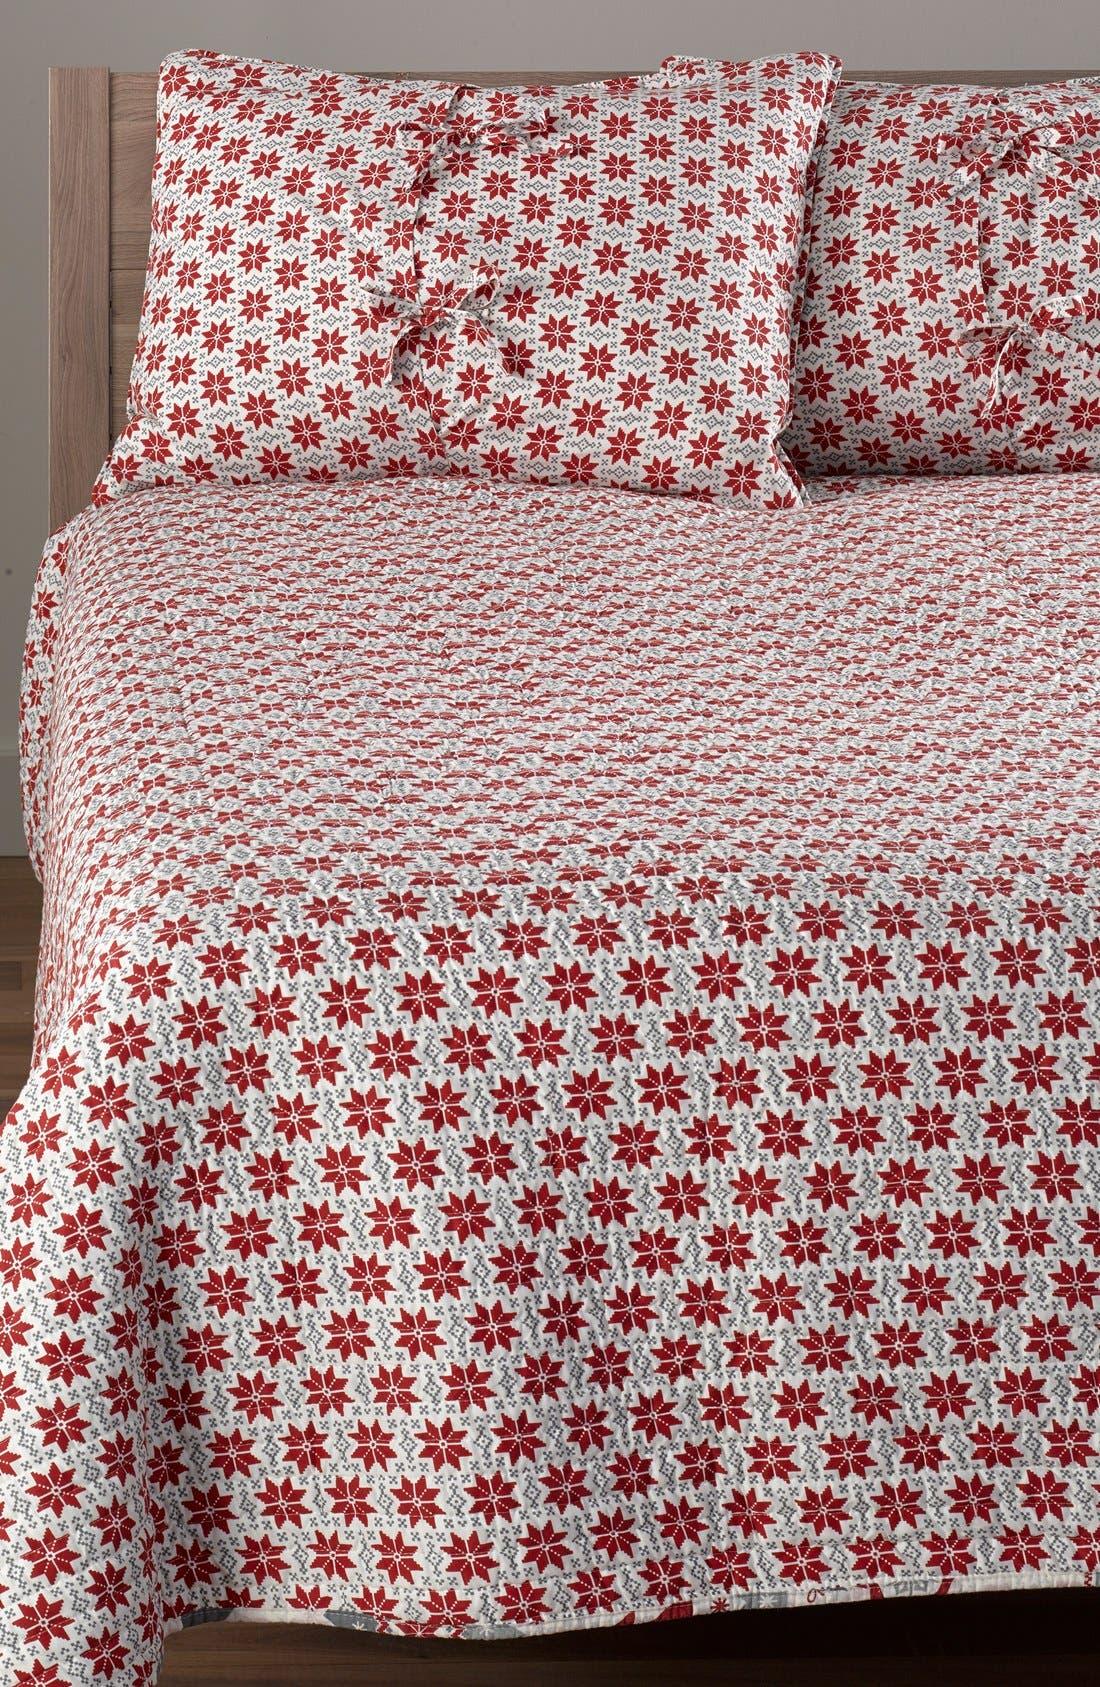 LEVTEX,                             'Silver Bells' Reversible Quilt,                             Alternate thumbnail 4, color,                             600